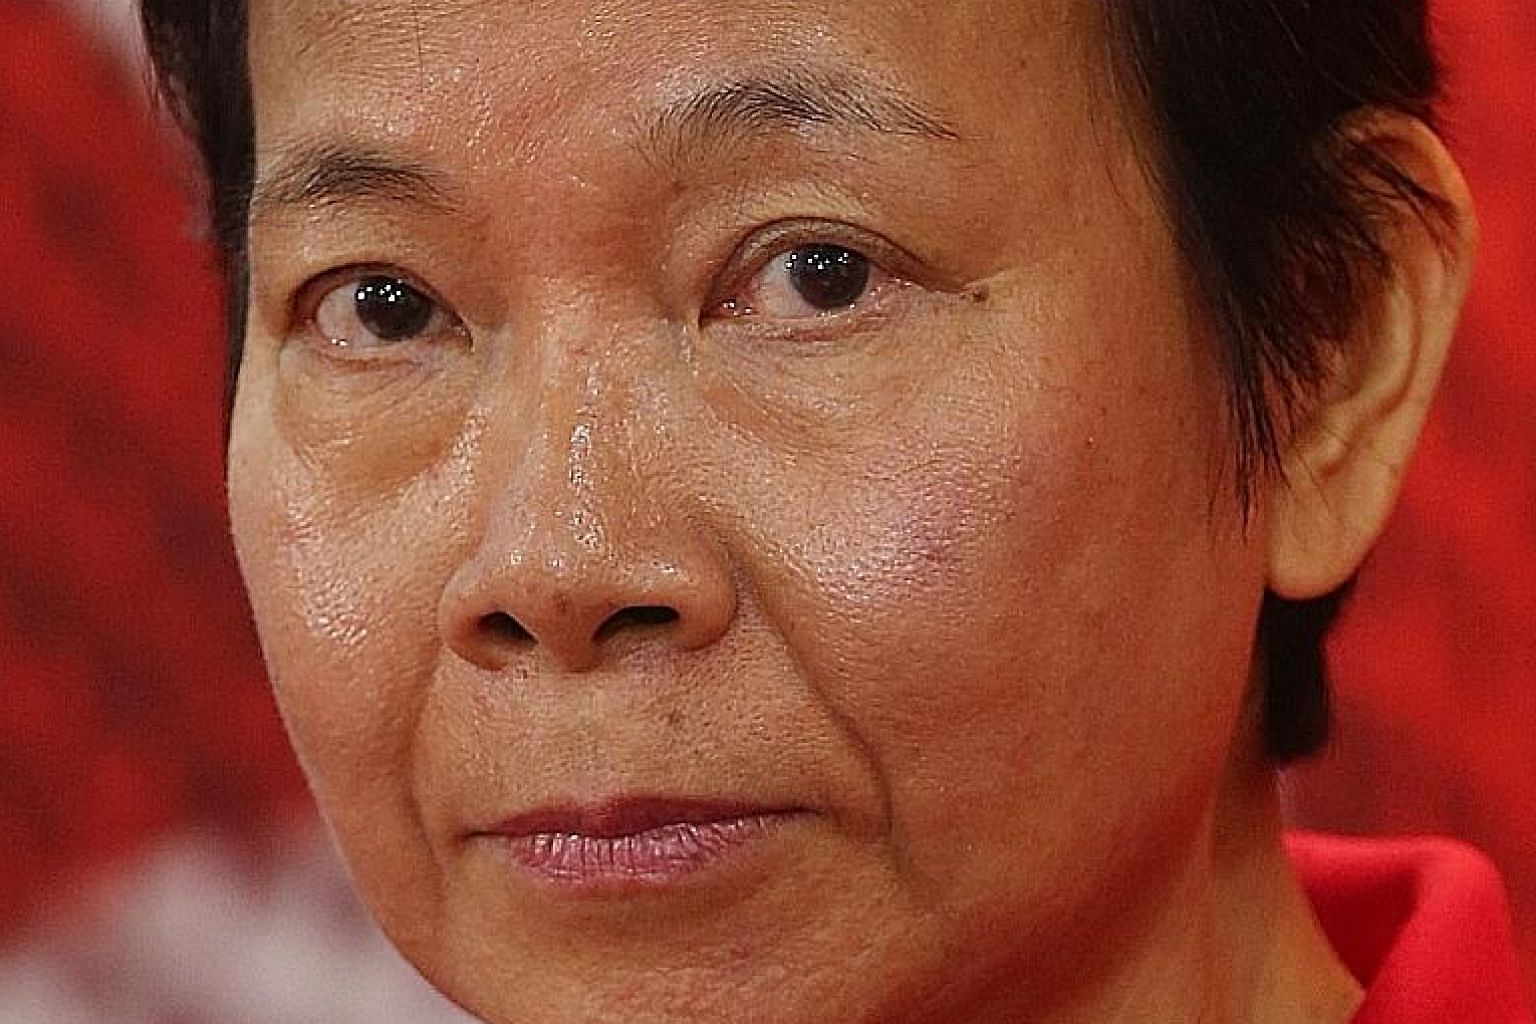 SDP assistant treasurer Wong Souk Yee, a resident of the GRC, was ordered to pay the State costs of $10,764.35.